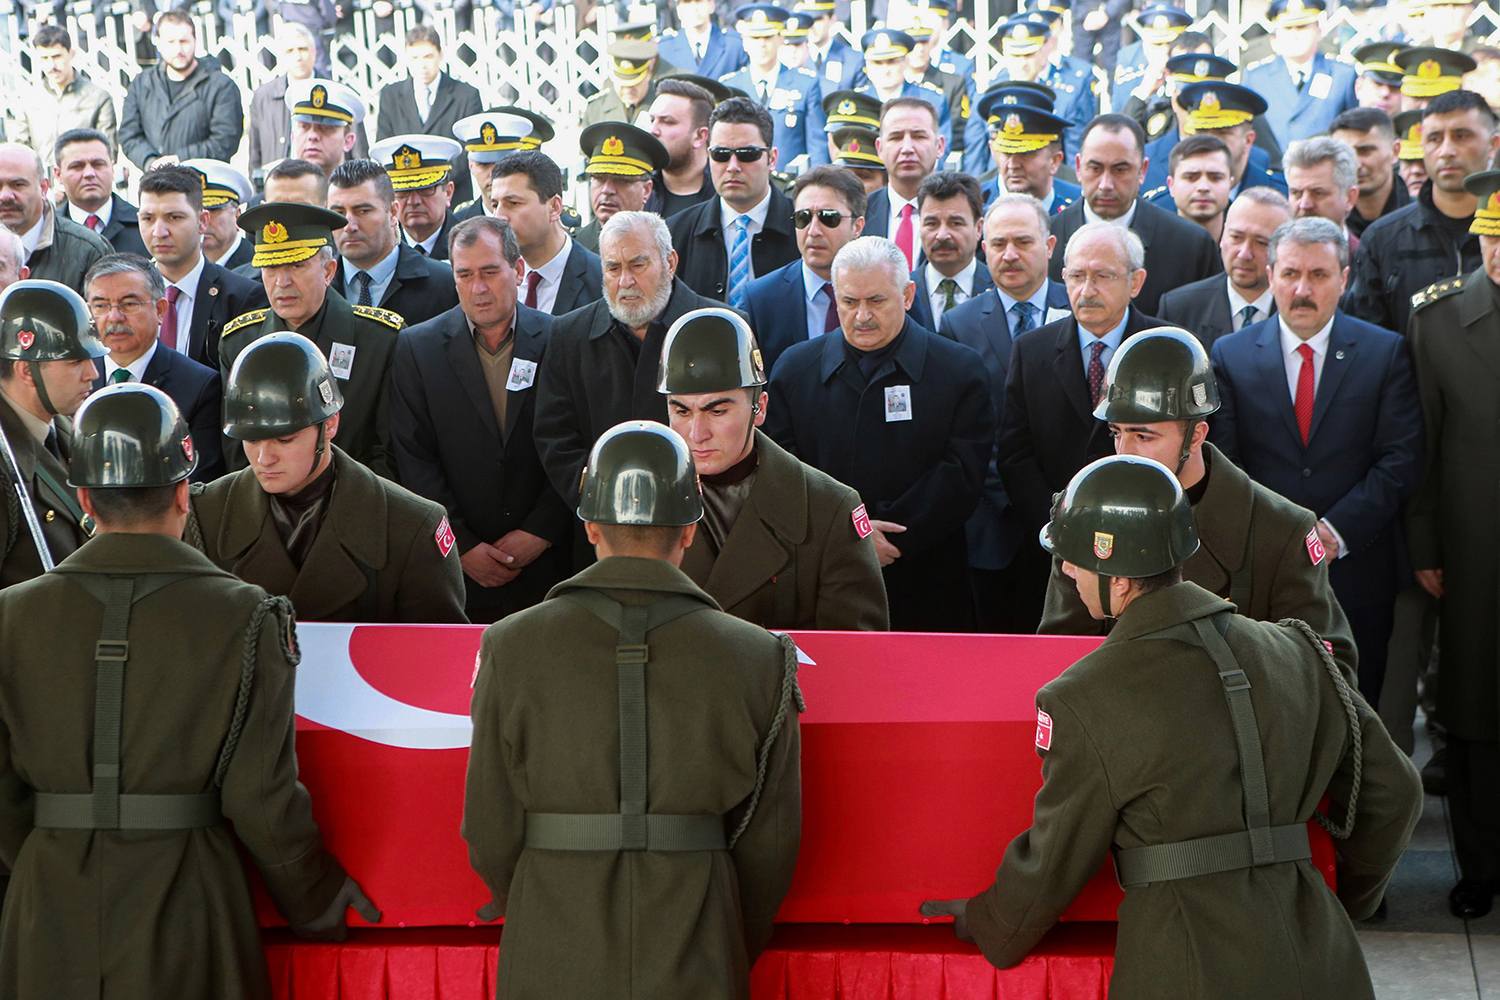 TOPSHOT - Military honour guards carry the coffin of Mahmut Uslu, one of five Turkish soldiers killed on Ferbuary 7, in an attack by IS militants around the Syrian town al-Bab, as Turkish Prime Minister Binali Yildirim (3rdR) attends the funeral ceremony in Ankara, on February 9, 2017. / AFP PHOTO / ADEM ALTAN / TT / kod 444